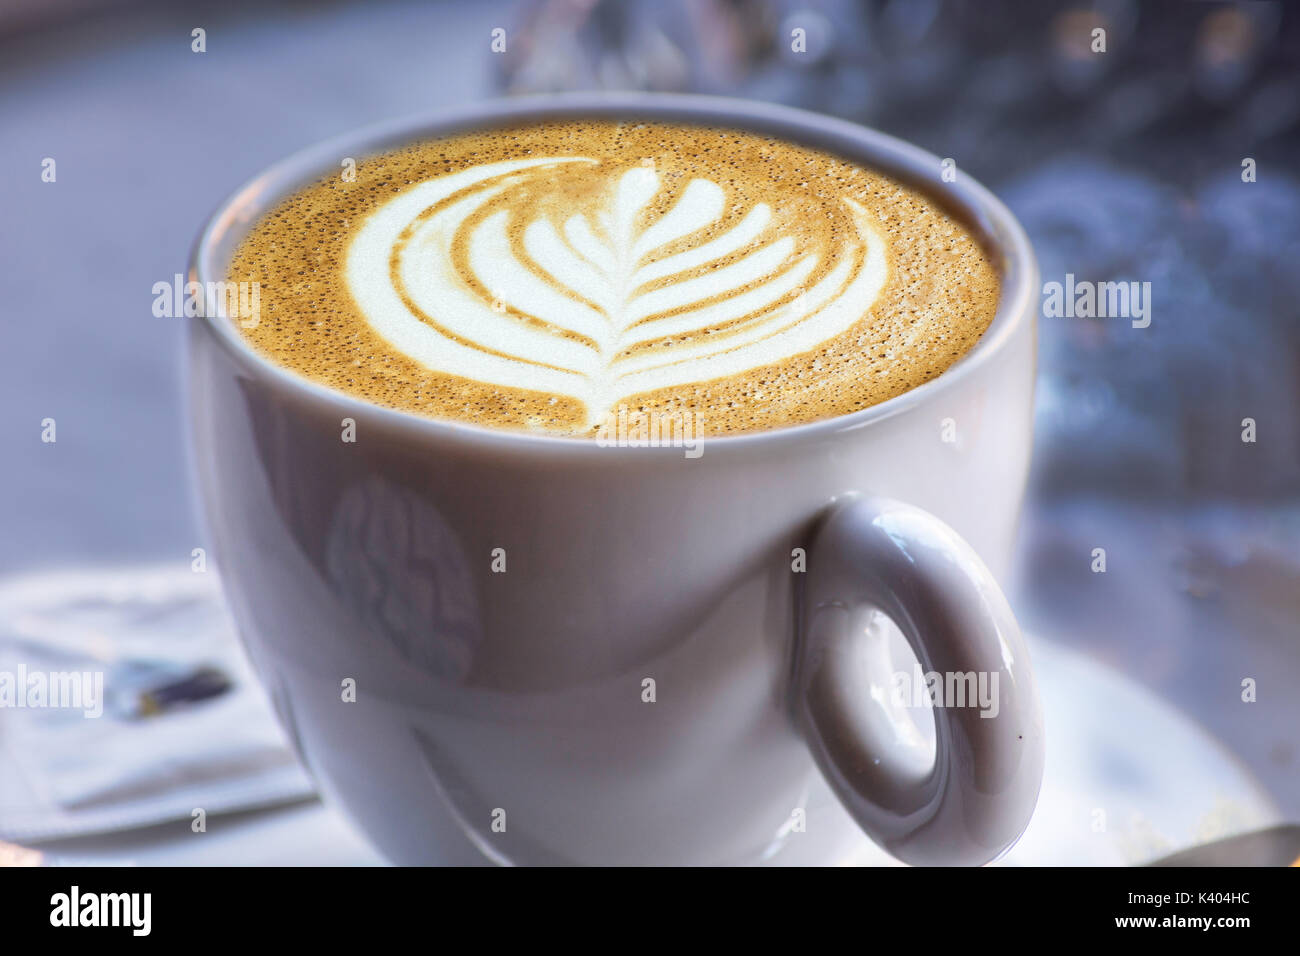 A white cup of coffee latte art before bokeh background Stock Photo